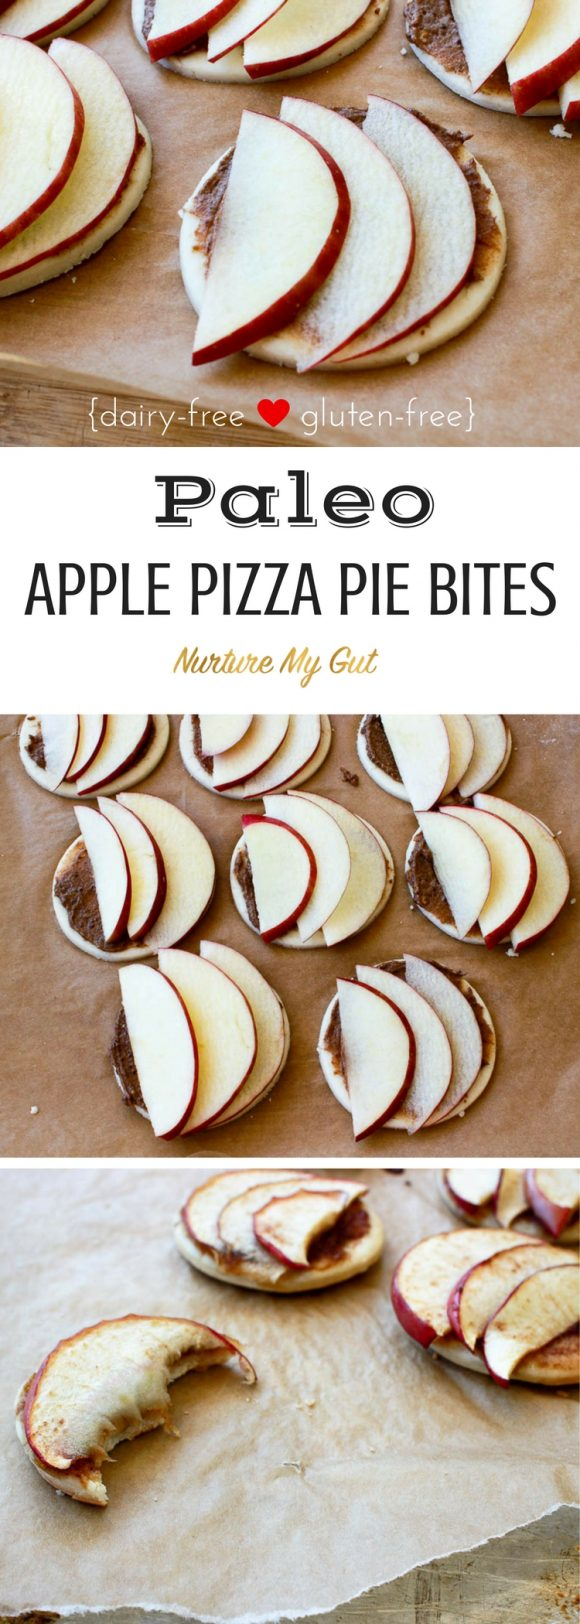 paleo-apple-pizza-pie-bites